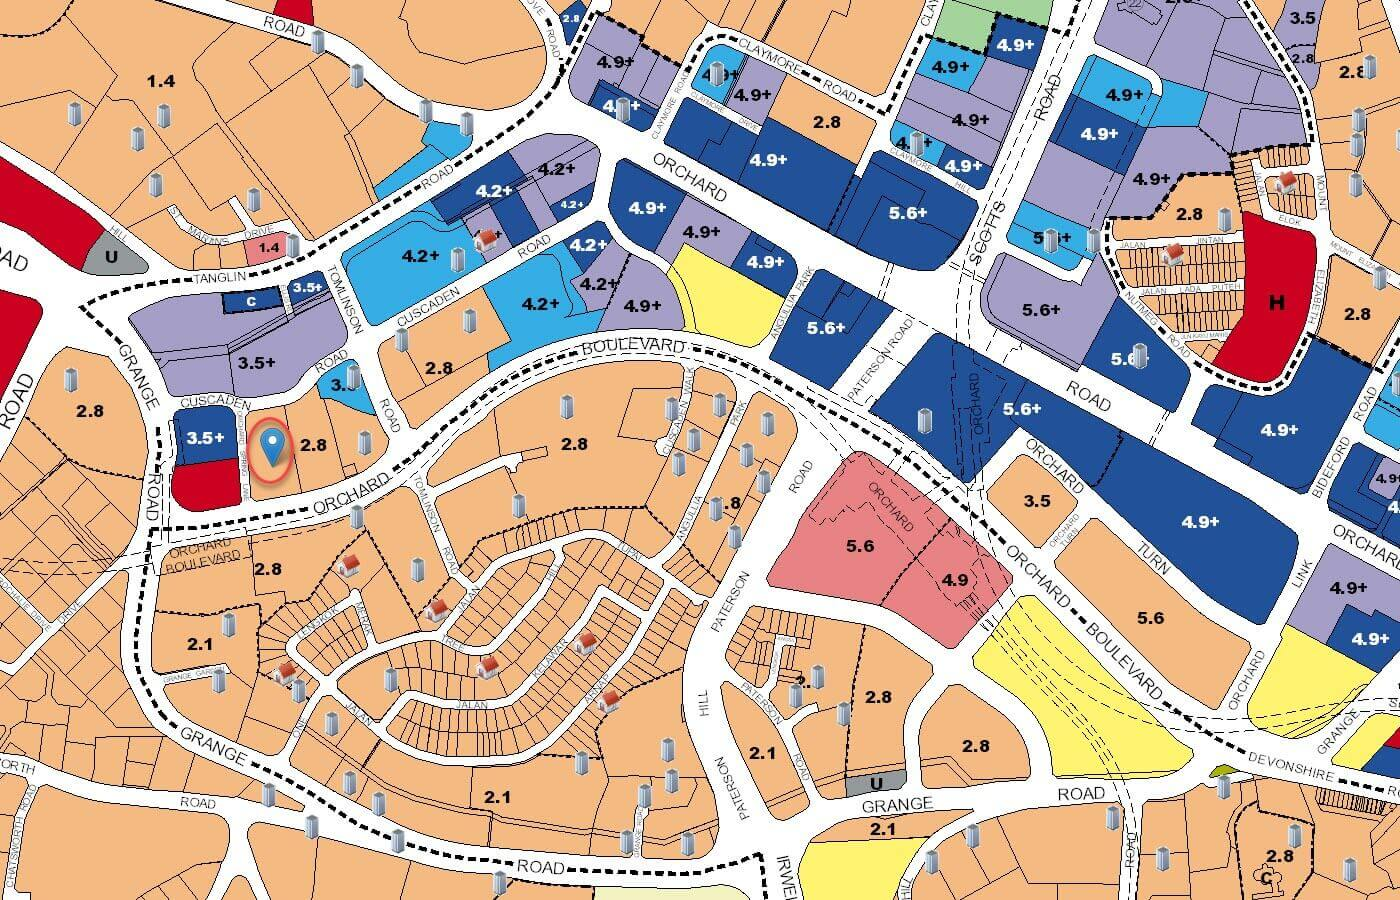 3 Orchard By-The-Park Condo URA Master Plan Map